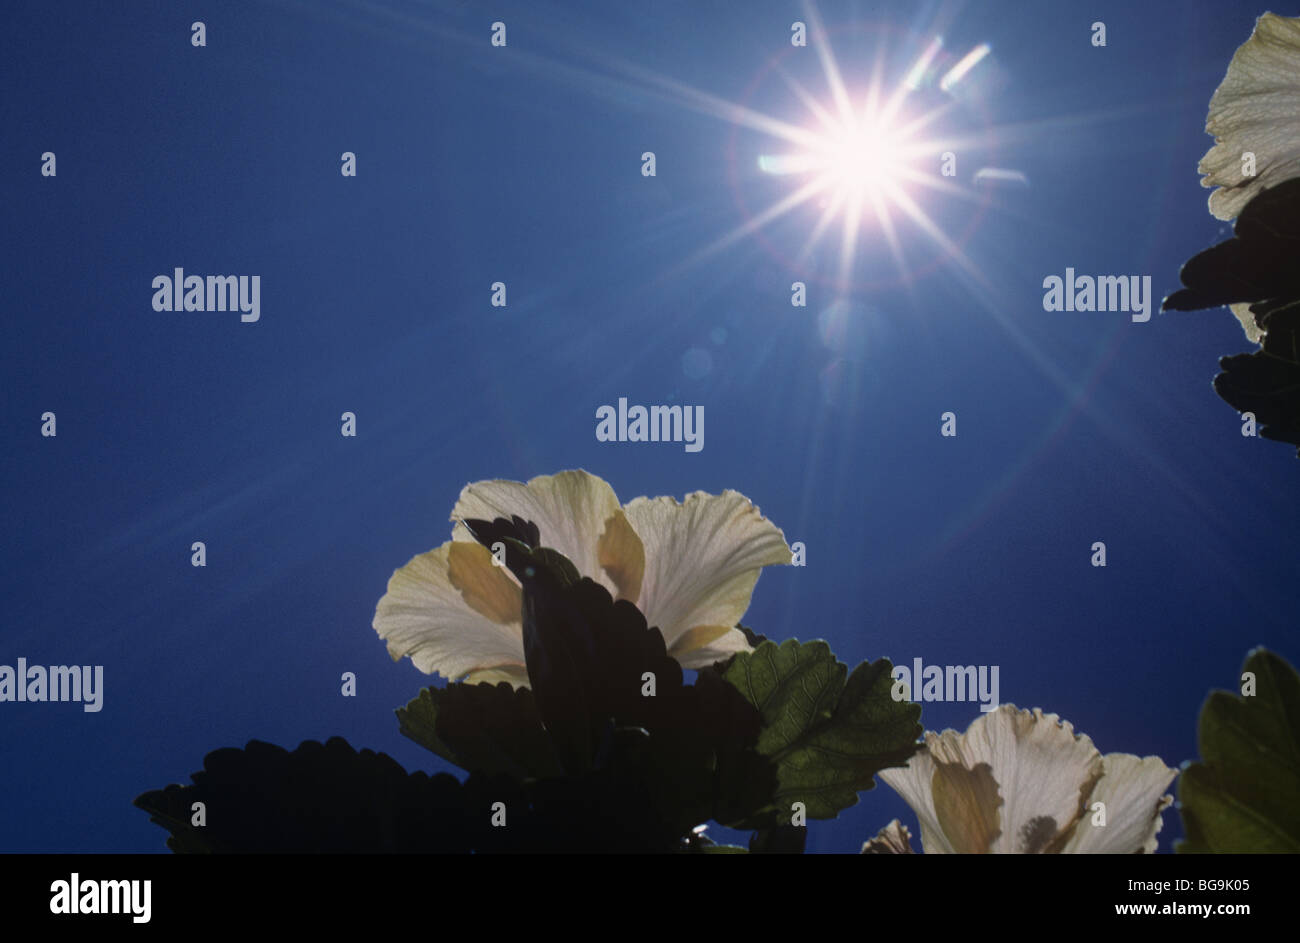 Hibiscus flower against the sun, South Africa - Stock Image